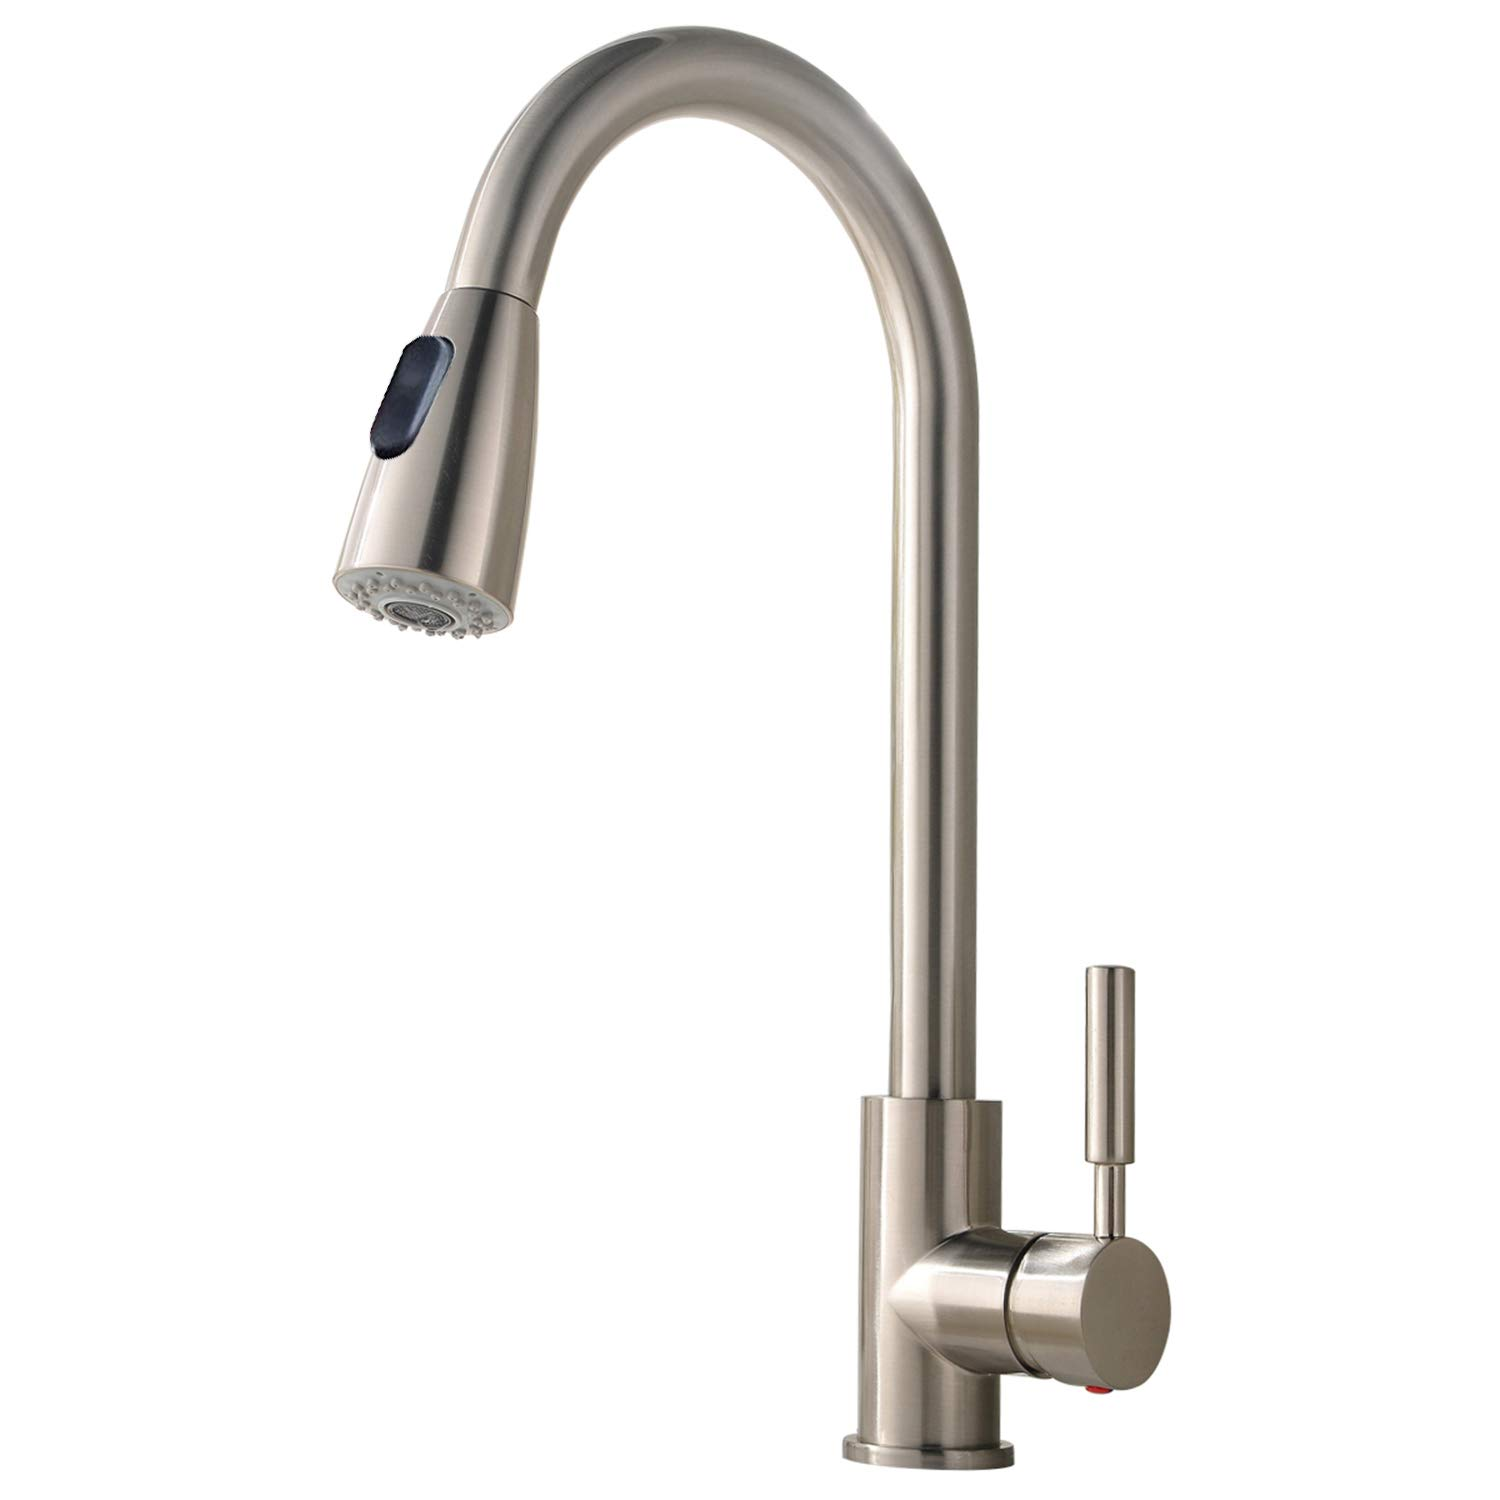 Comllen Best Commercial Stainless Steel Single Handle Single Hole Brushed Nickel Pull Out Spray Kitchen Faucet, Pull Down Kitchen Sink Faucet